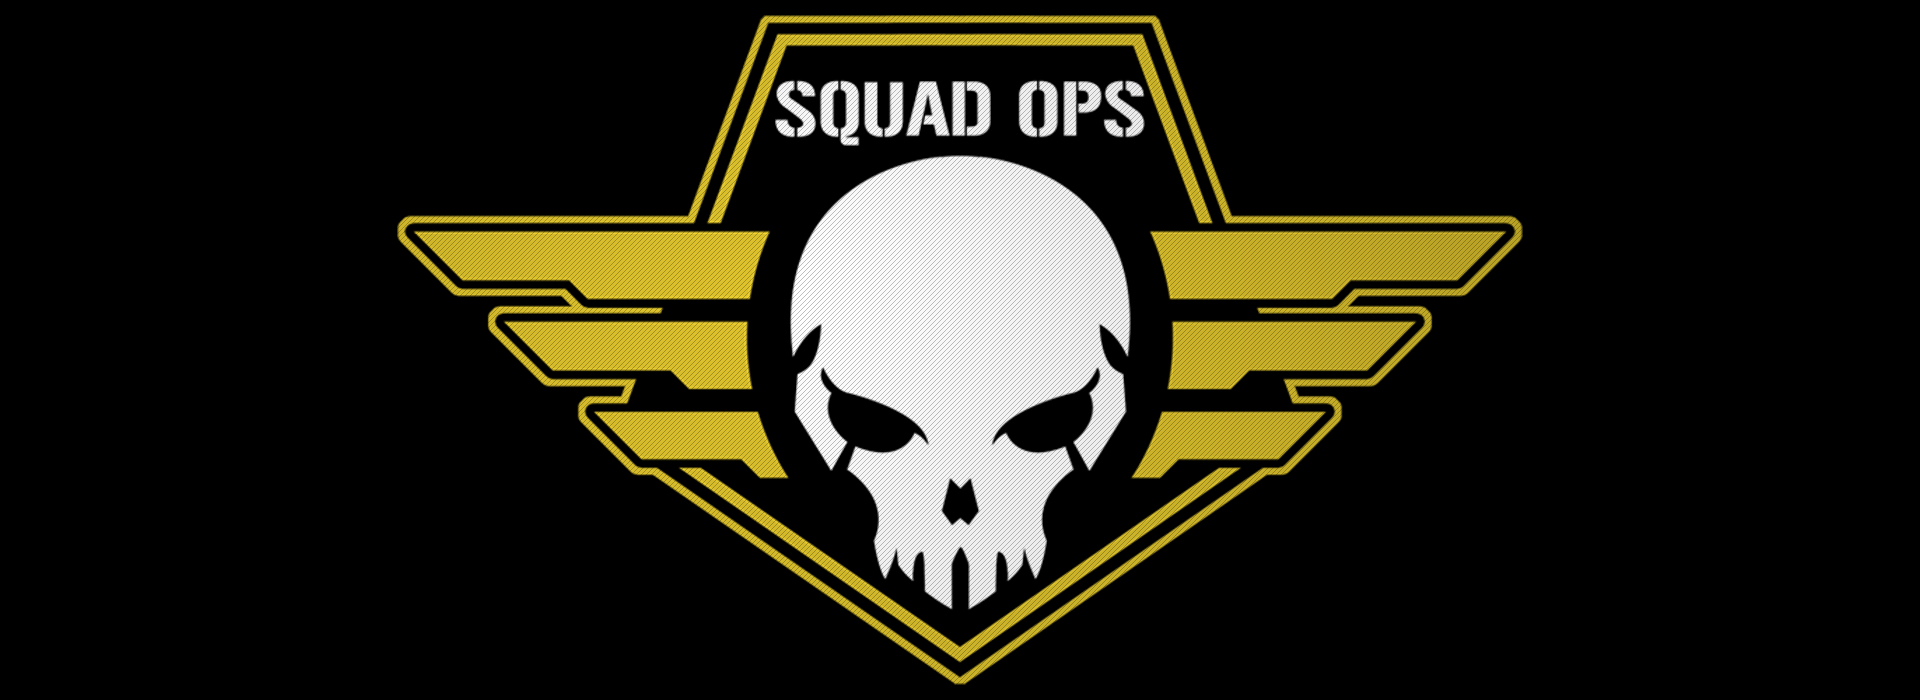 https://media.joinsquad.com/2017/July/SquadOps/squadops_carousel.png